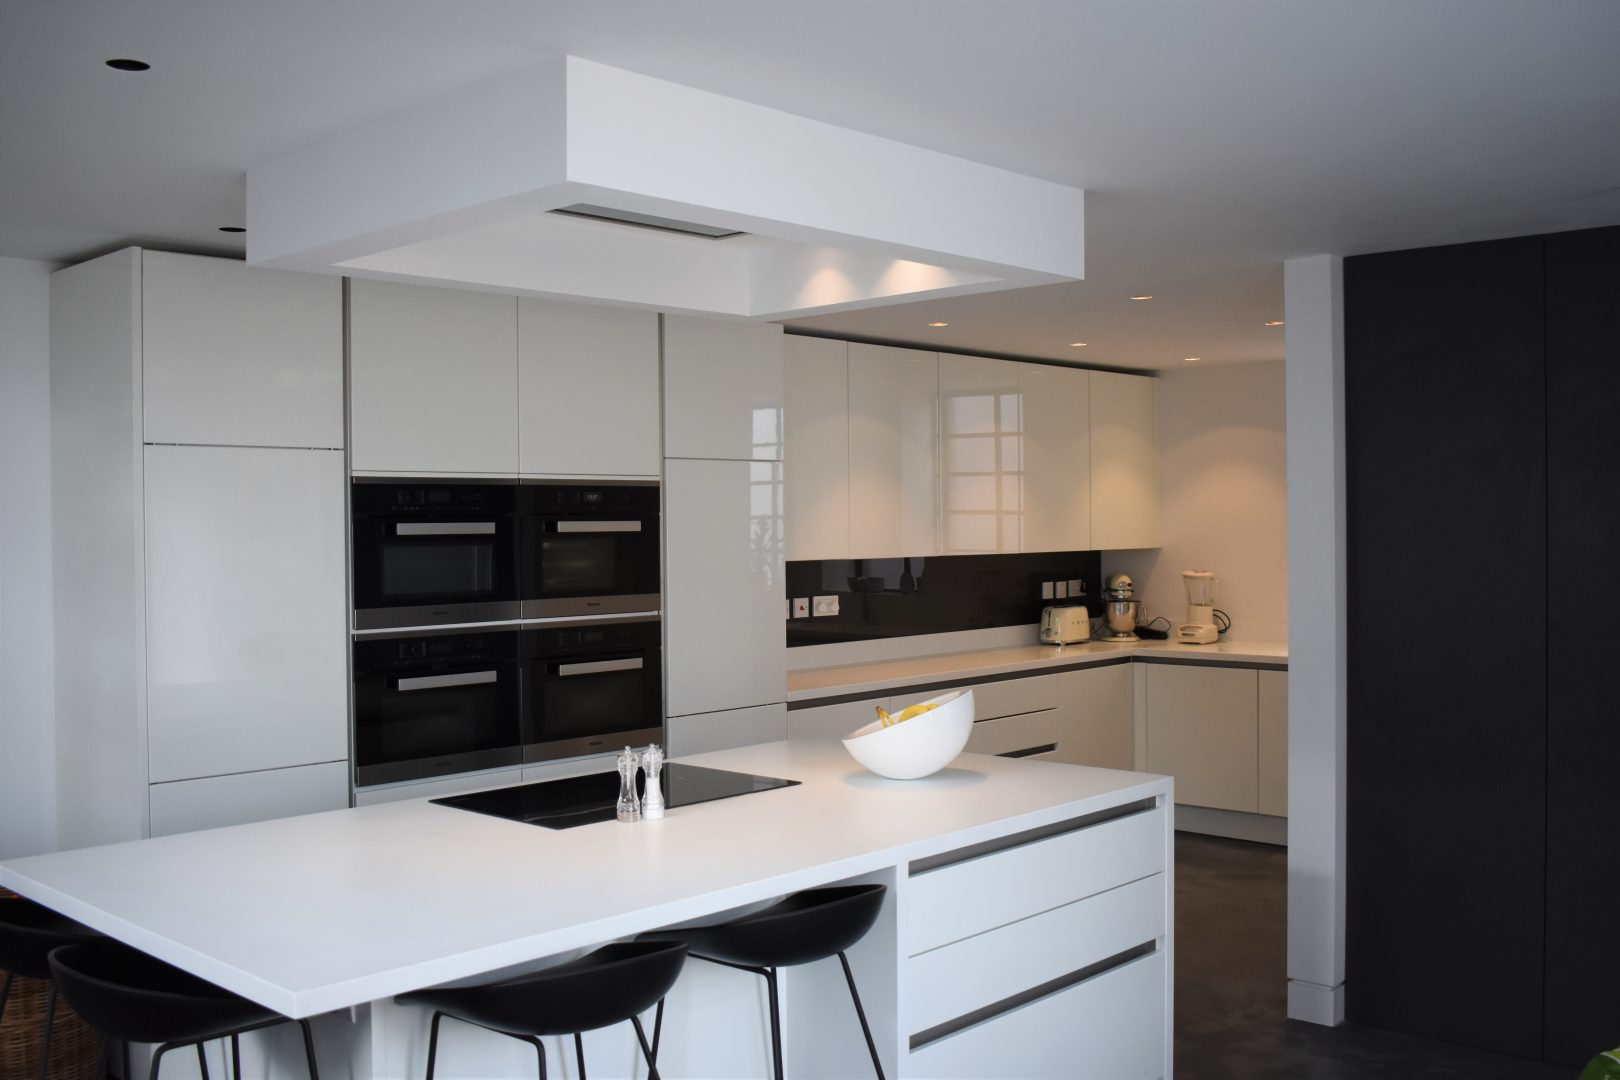 Monocrhome Kitchen with Handleless Cabinets